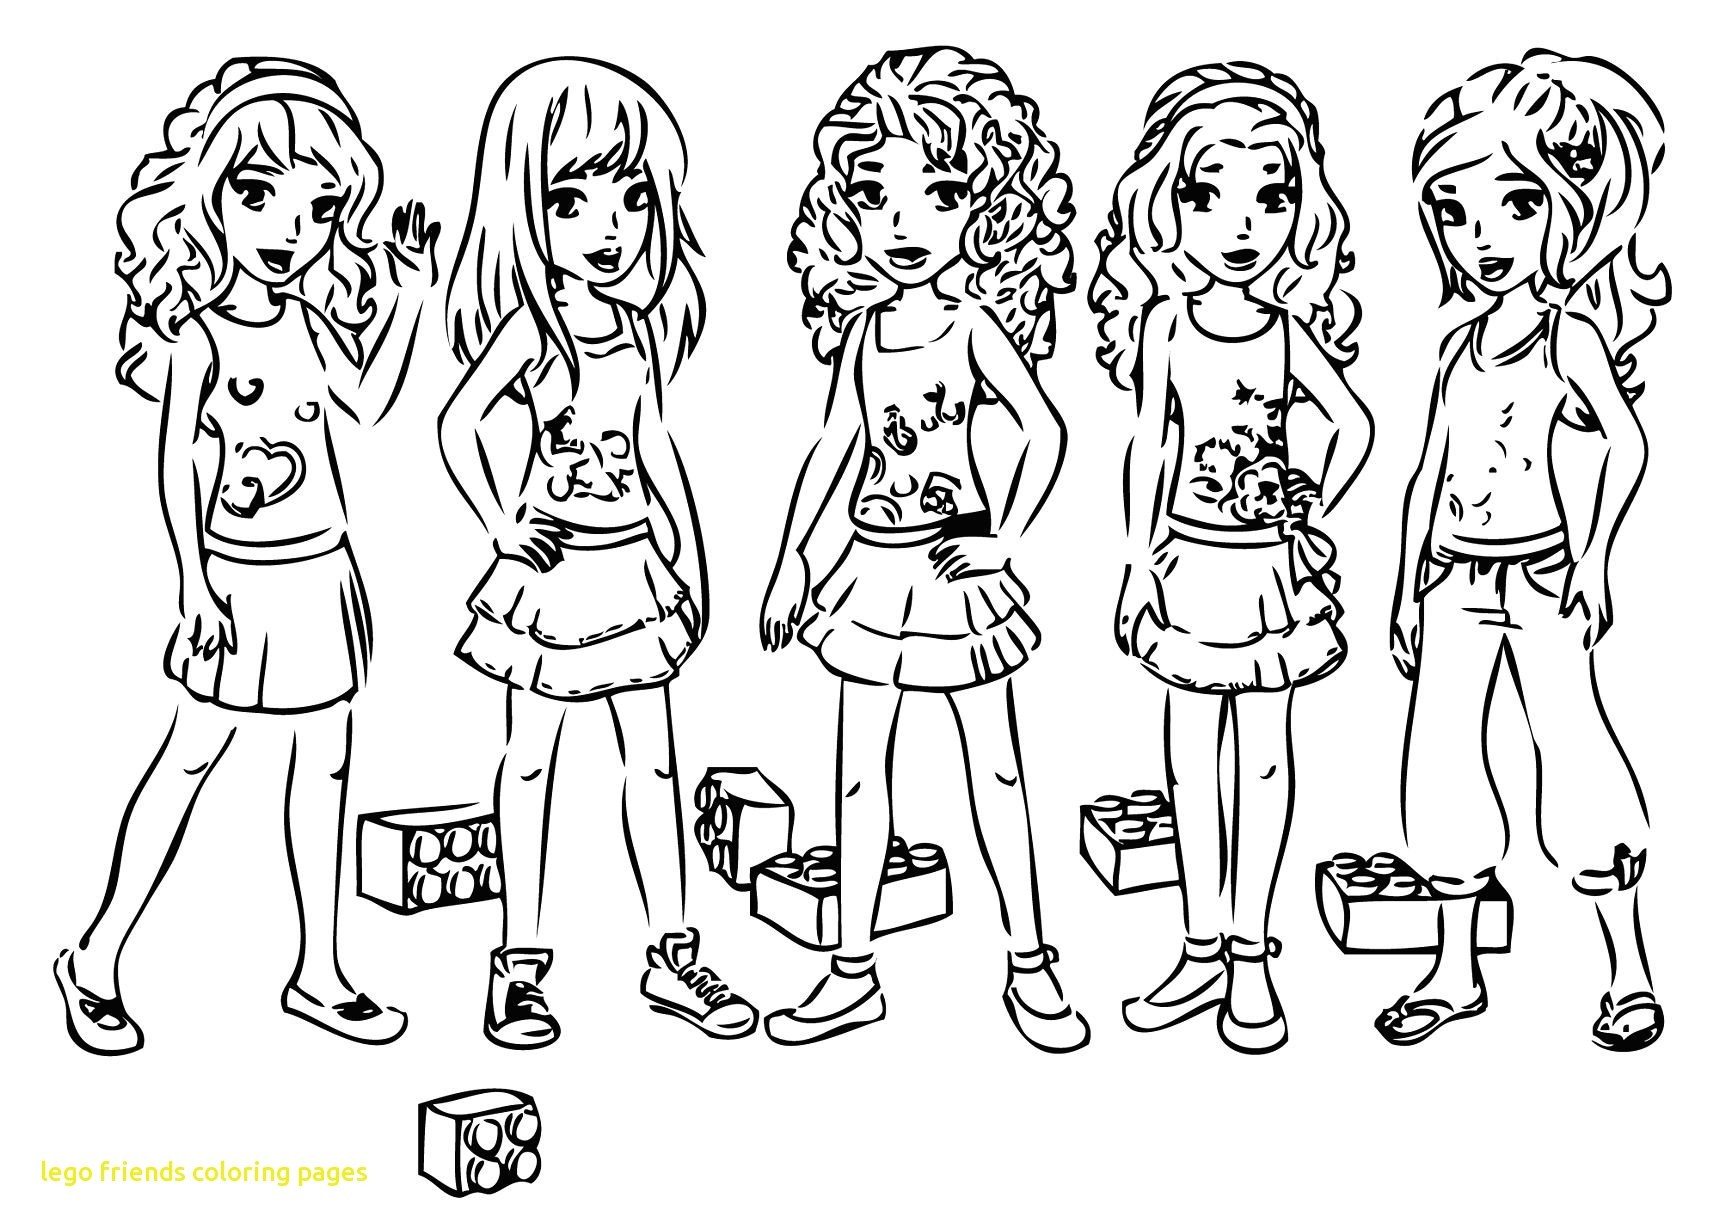 1720x1229 Coloring Pages Hd Copy Lego Friends Coloring Pages With Beautiful